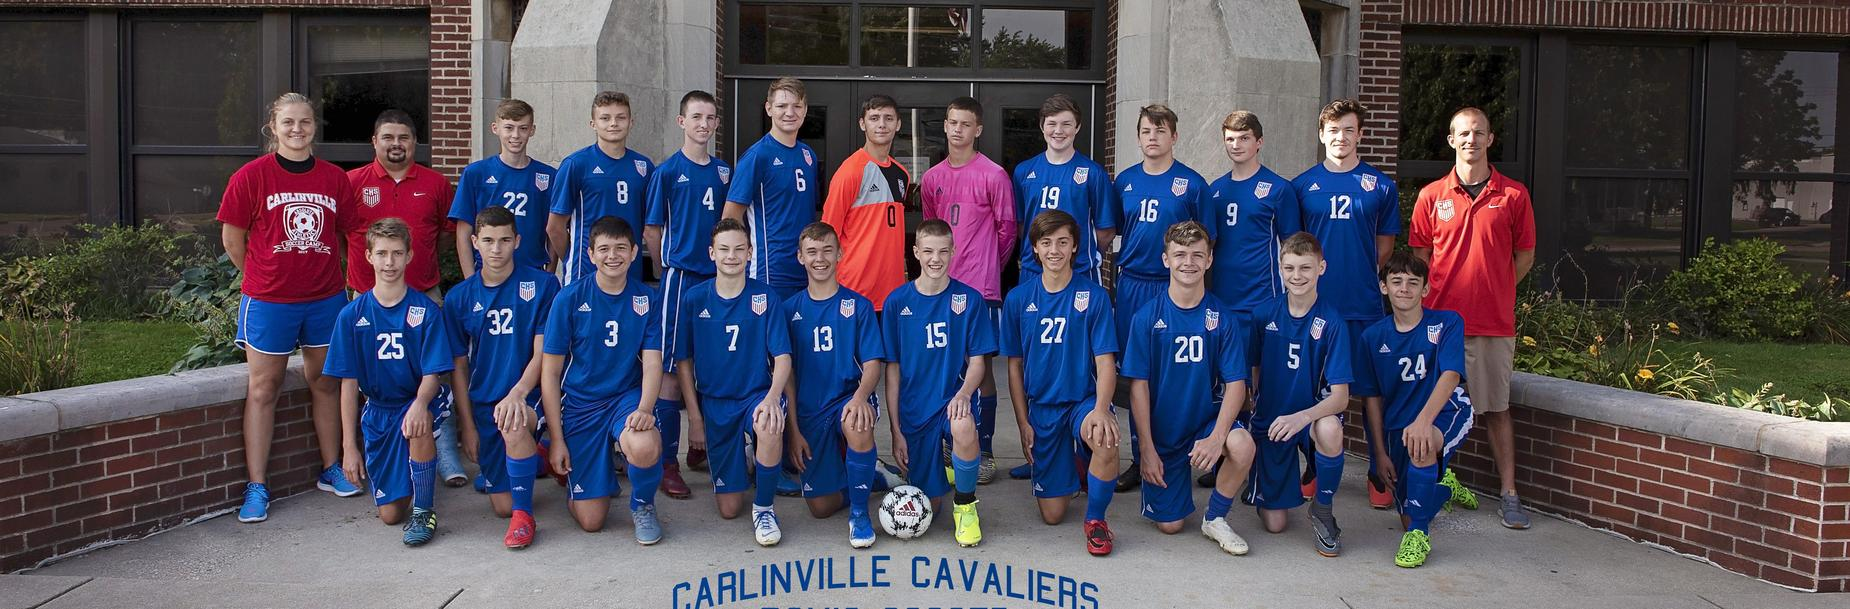 2019-2020 Carlinville High School Boys Soccer Team